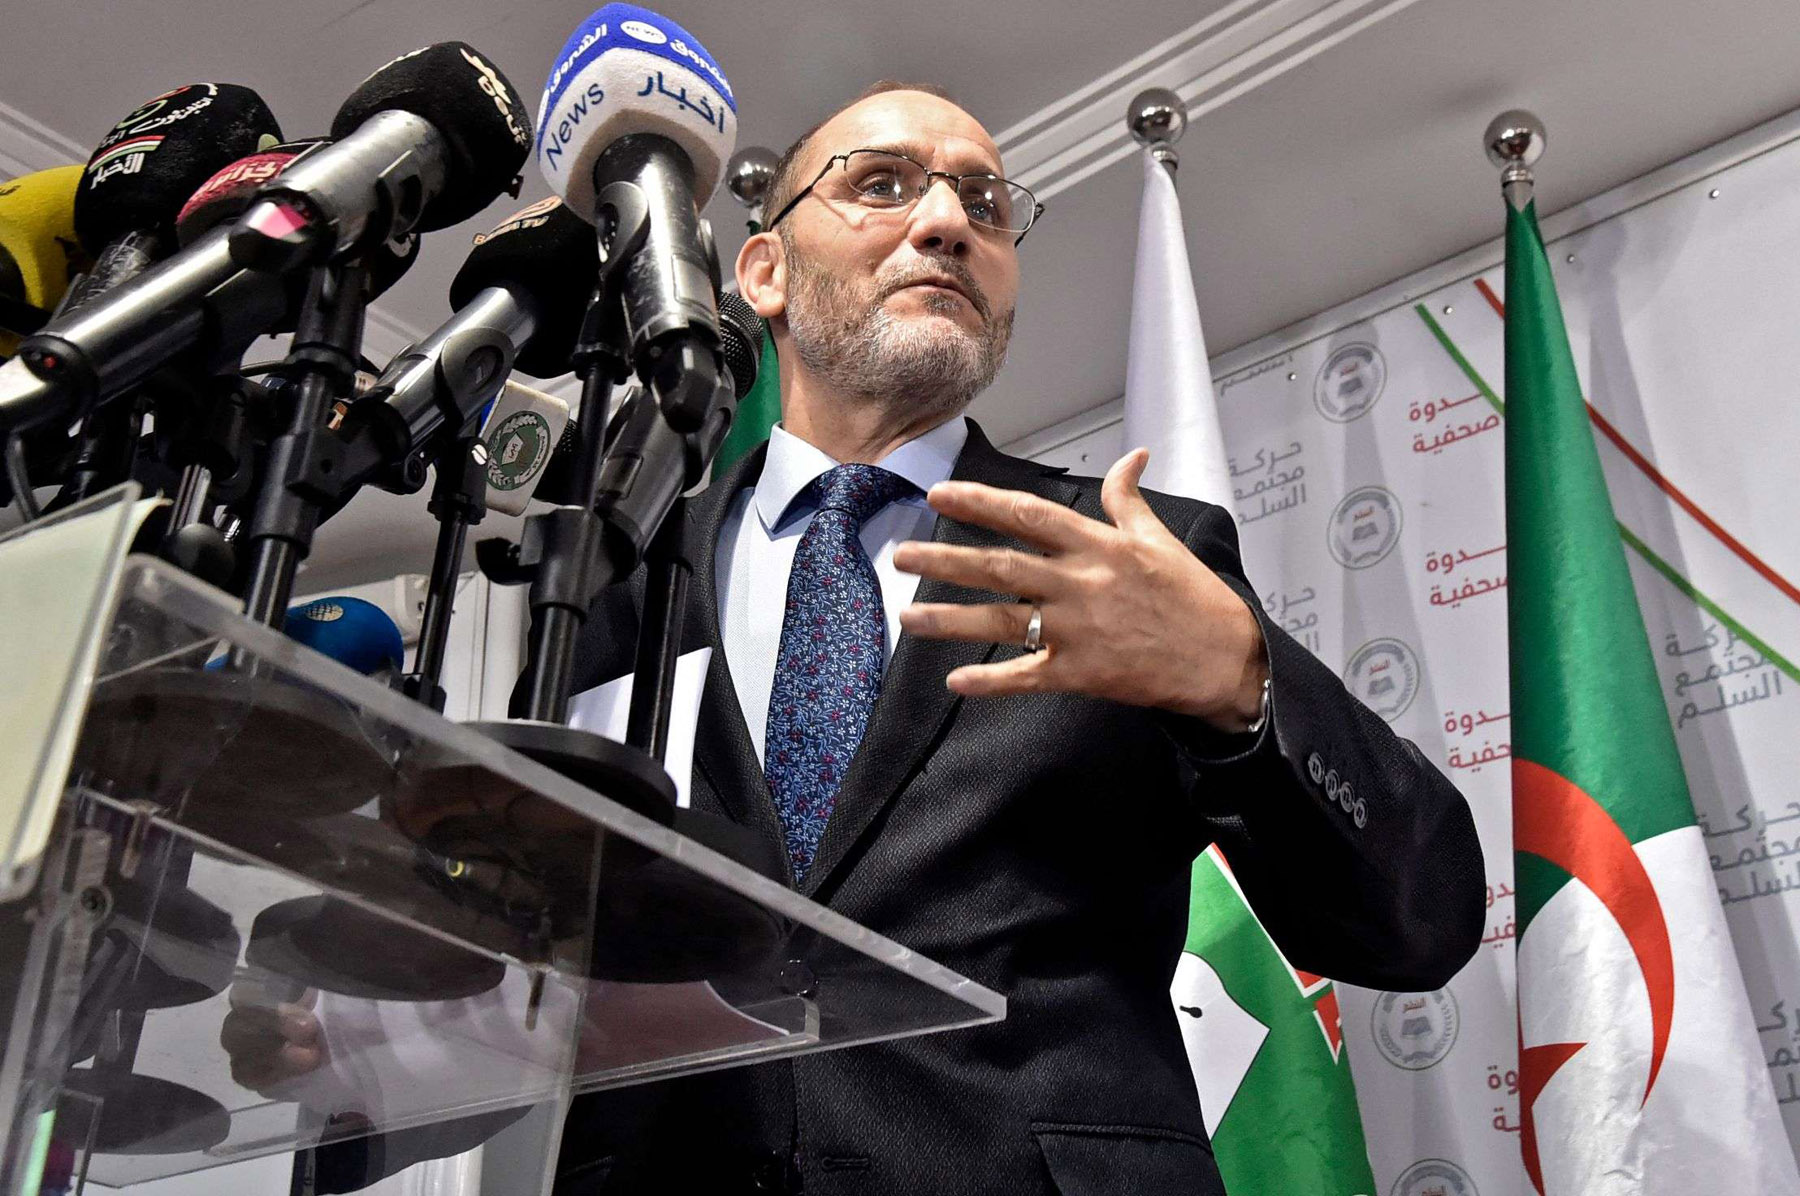 Leader of Algeria's Islamist party, the Movement of Society for Peace (MSP), Abderrezak Mokri holds a press conference in the capital Algiers. (AFP)